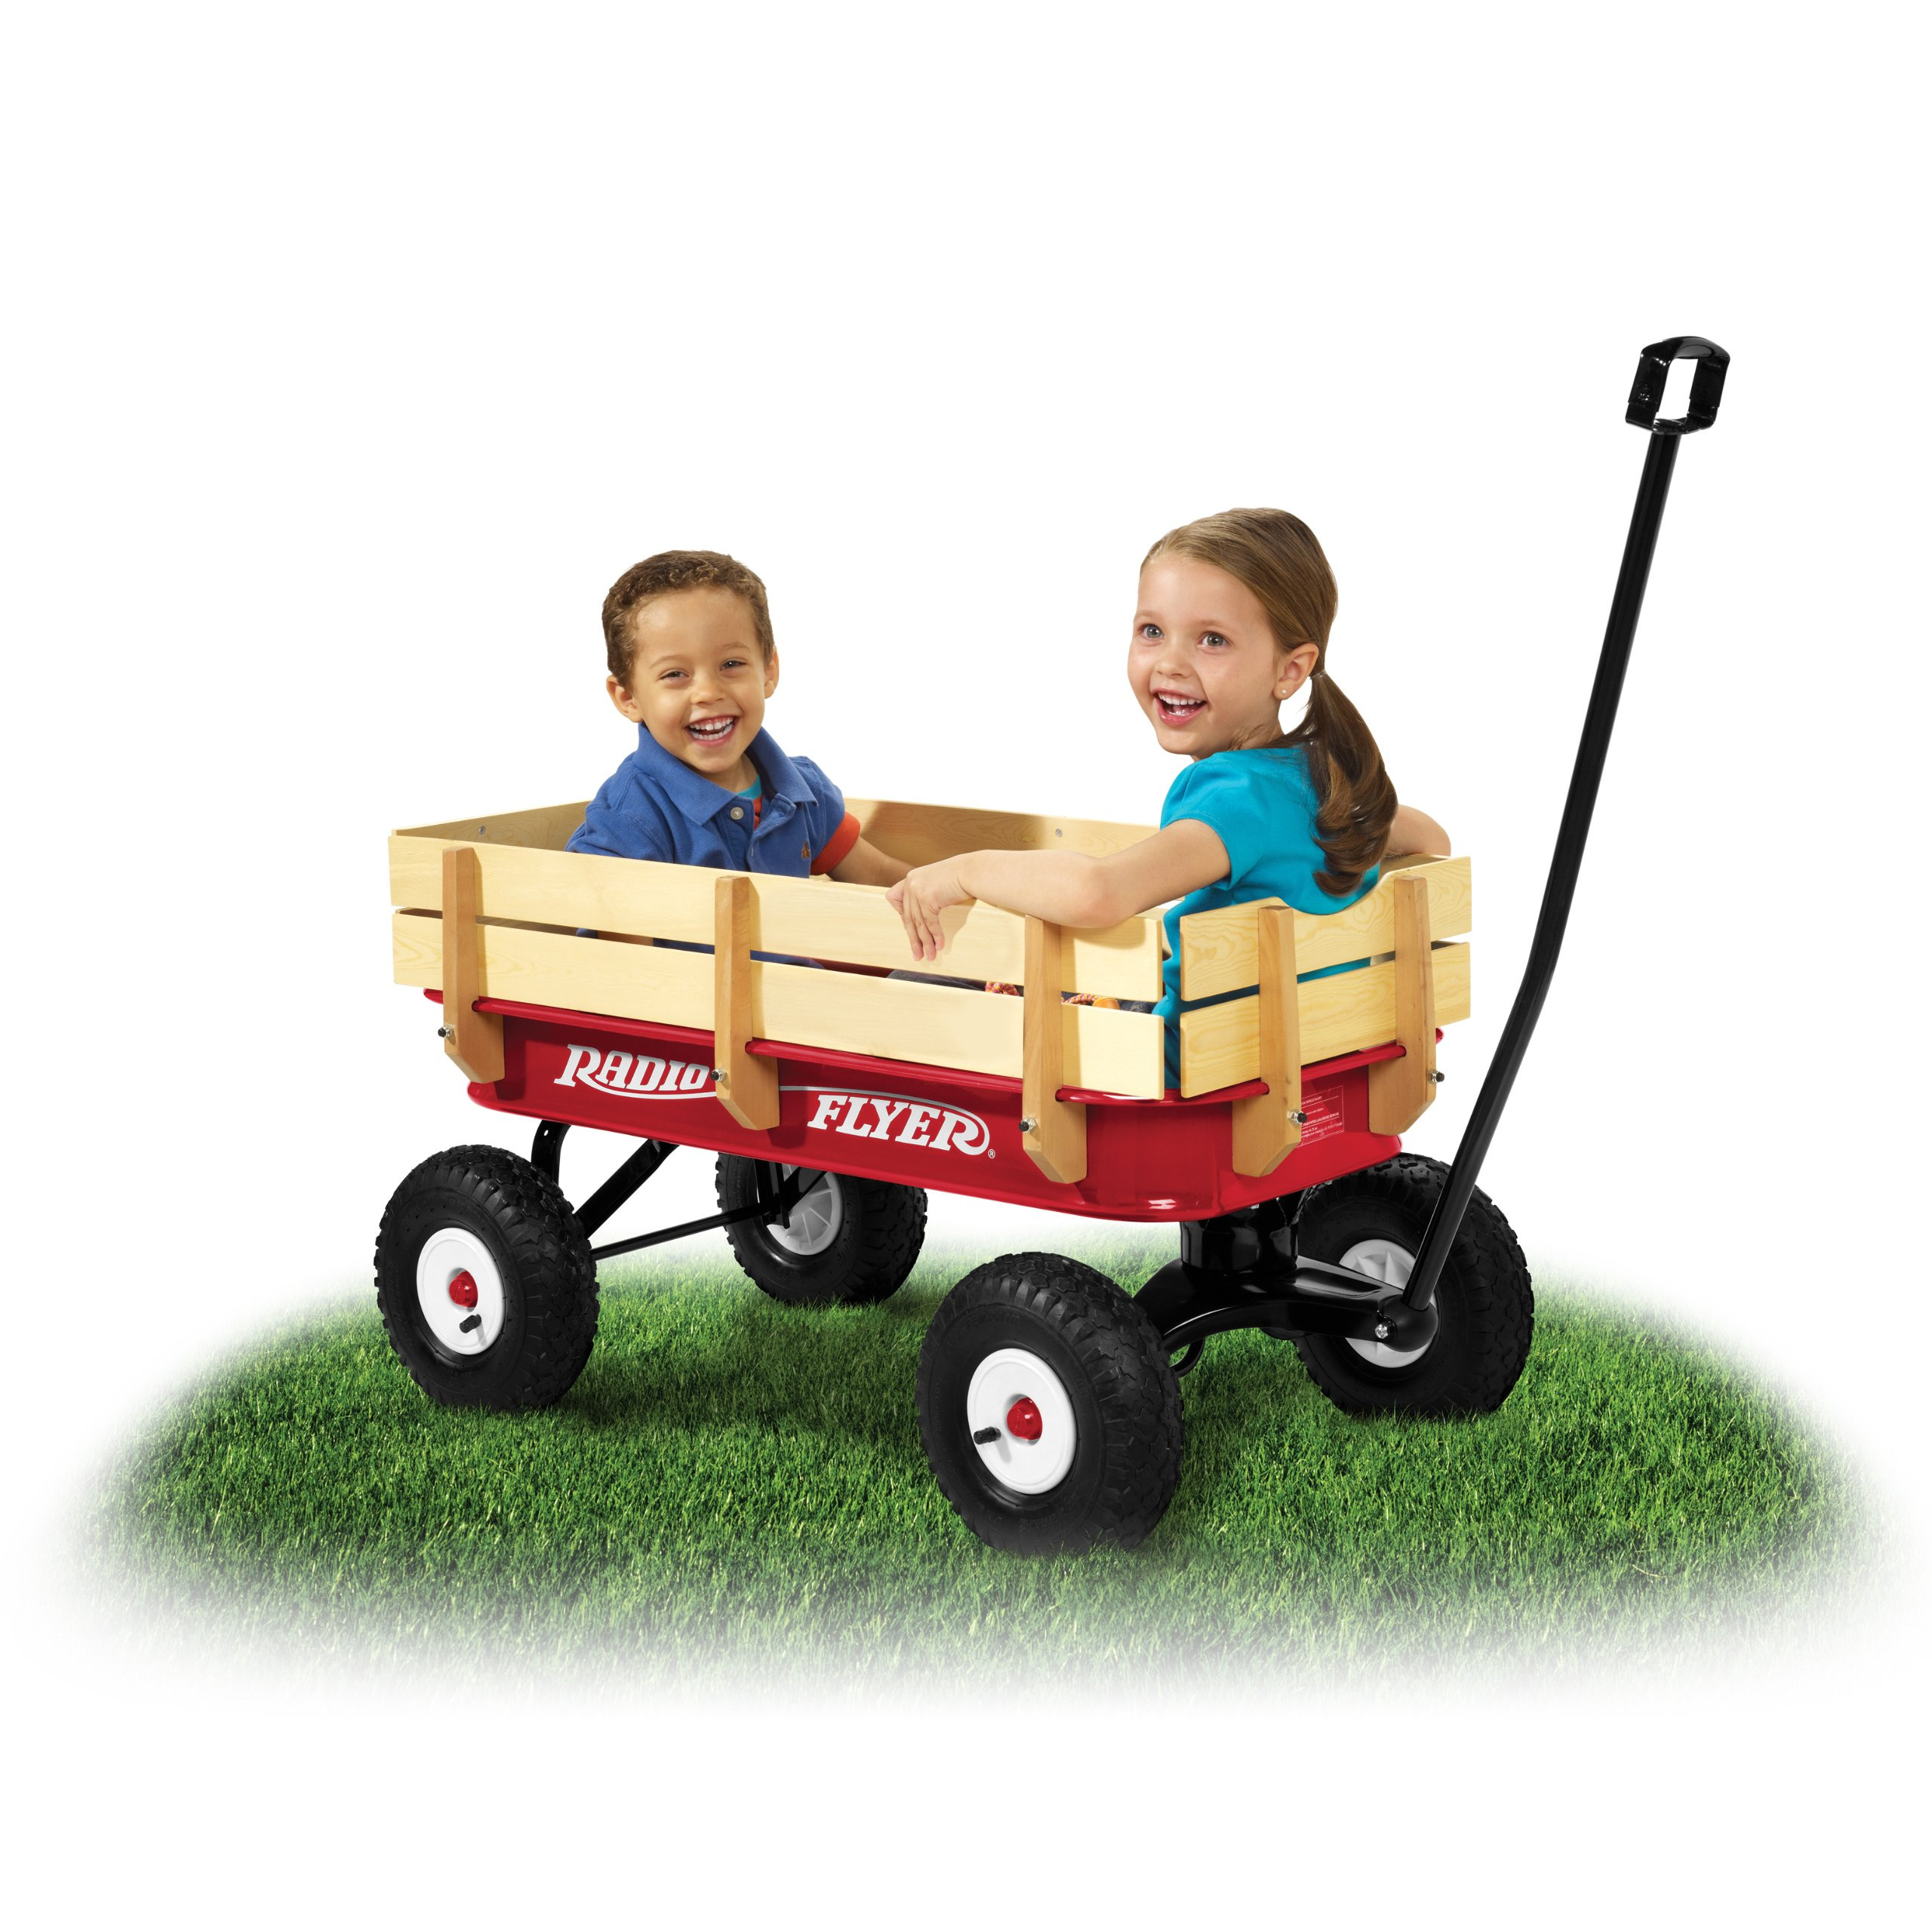 Radio Flyer Full Size All-Terrain Steel & Wood Wagon by Radio Flyer (Image #1)